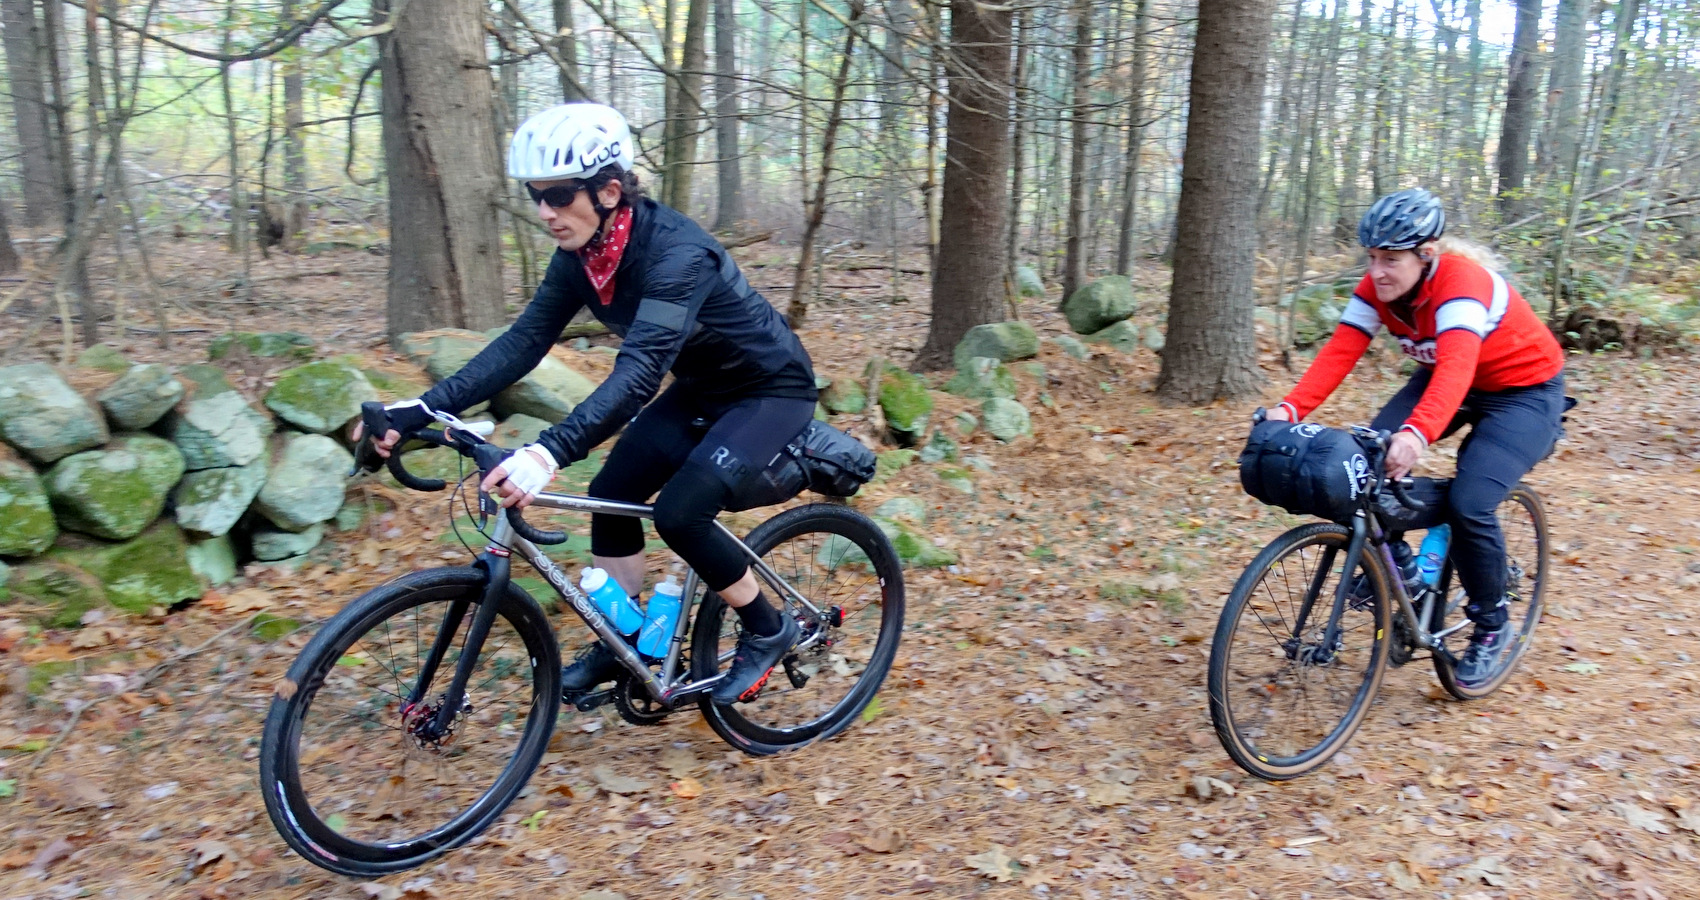 Bikepacking on a New England country road in autumn